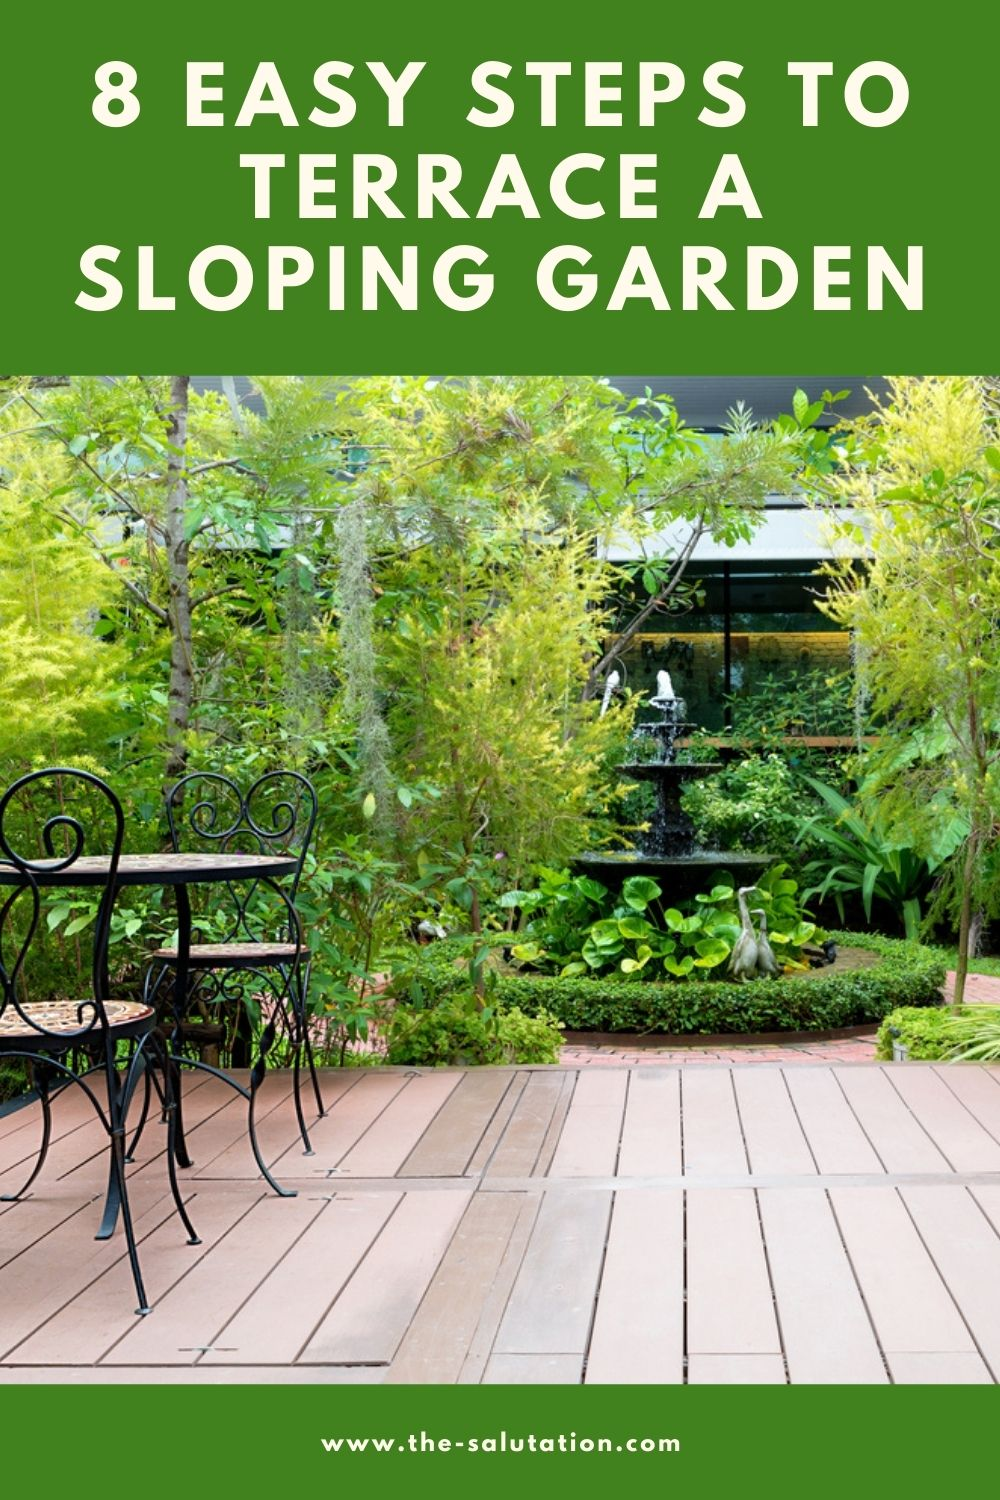 8 Easy Steps to Terrace a Sloping Garden 2